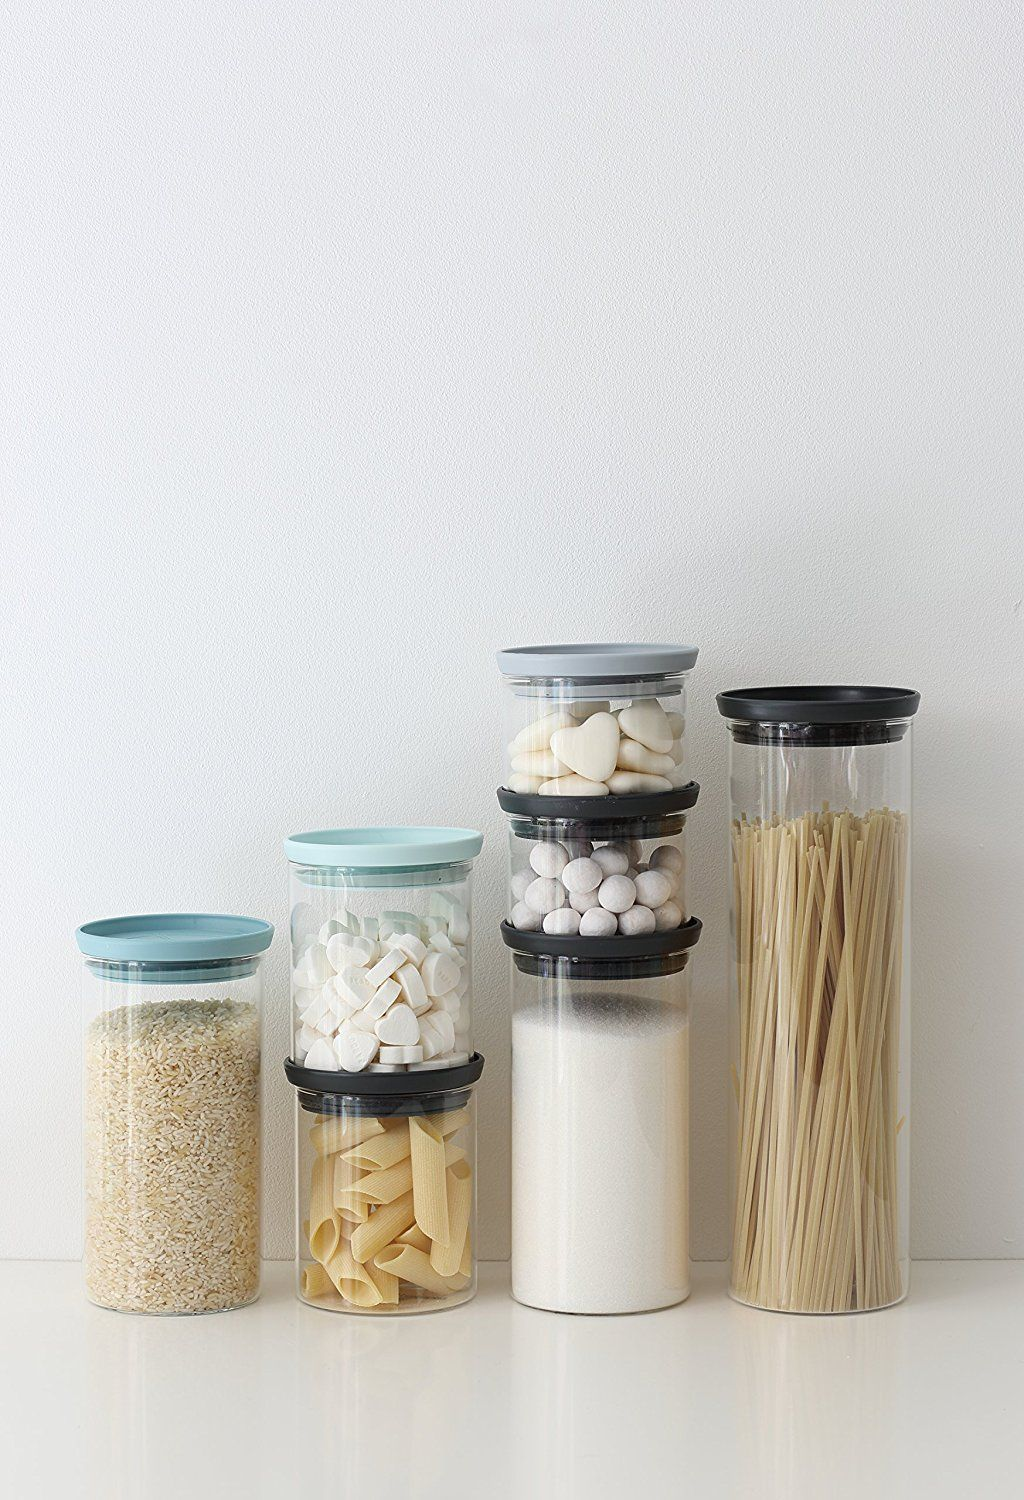 Space in the kitchen by adding shelves and glass canisters with seals - Amazon Com Brabantia Stackable Glass Food Storage Containers Set Of 3 Kitchen